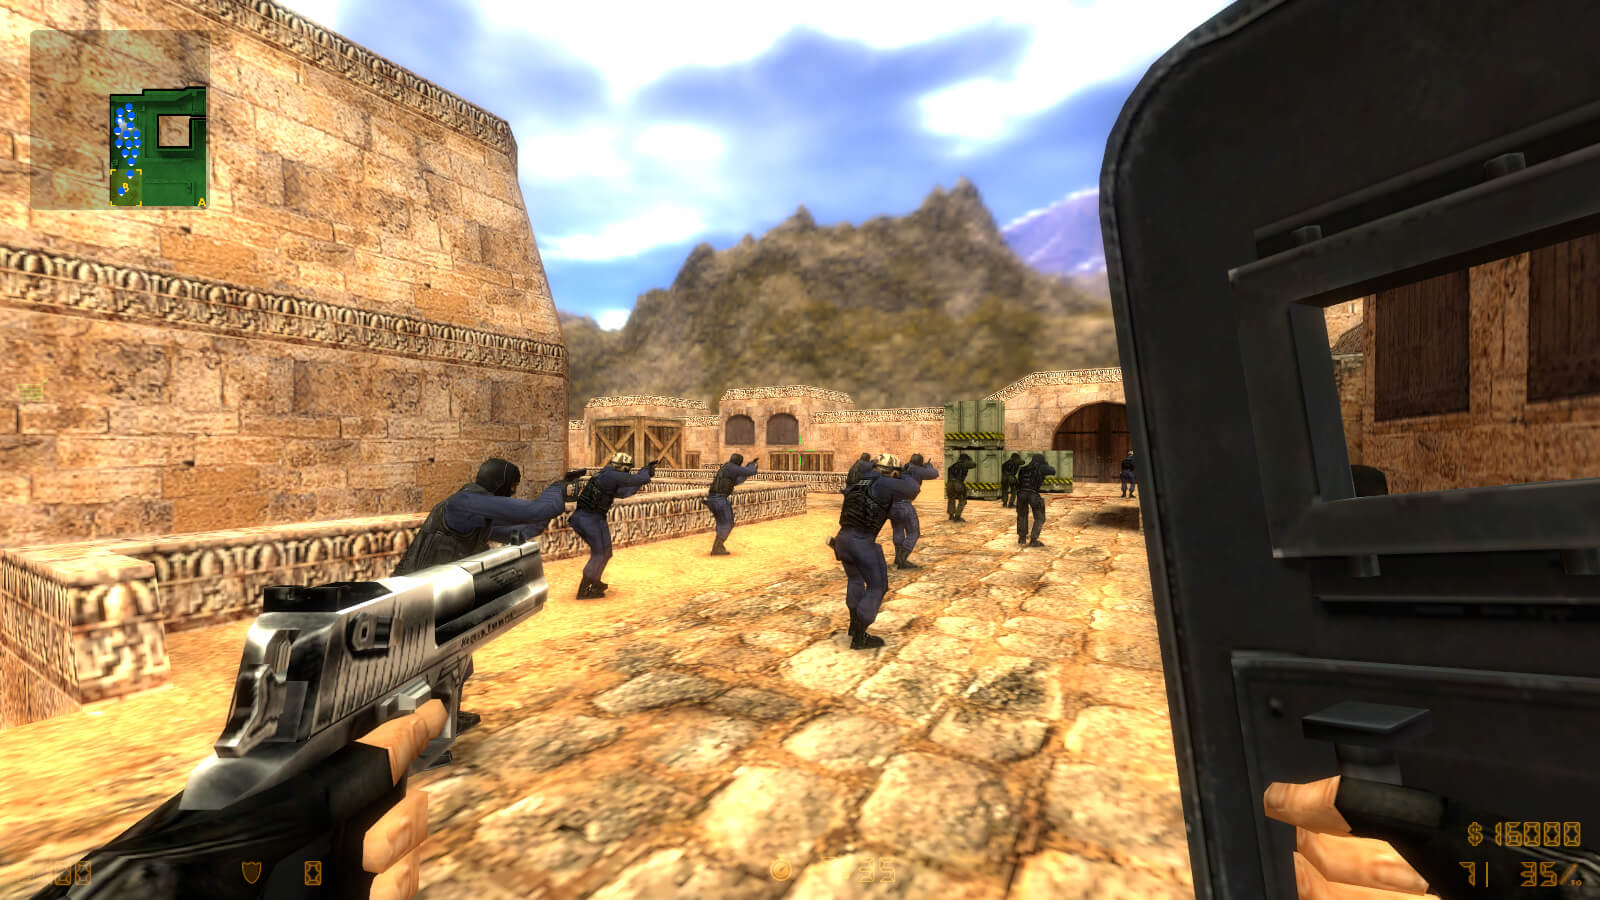 Best resolution to play cs 1.6